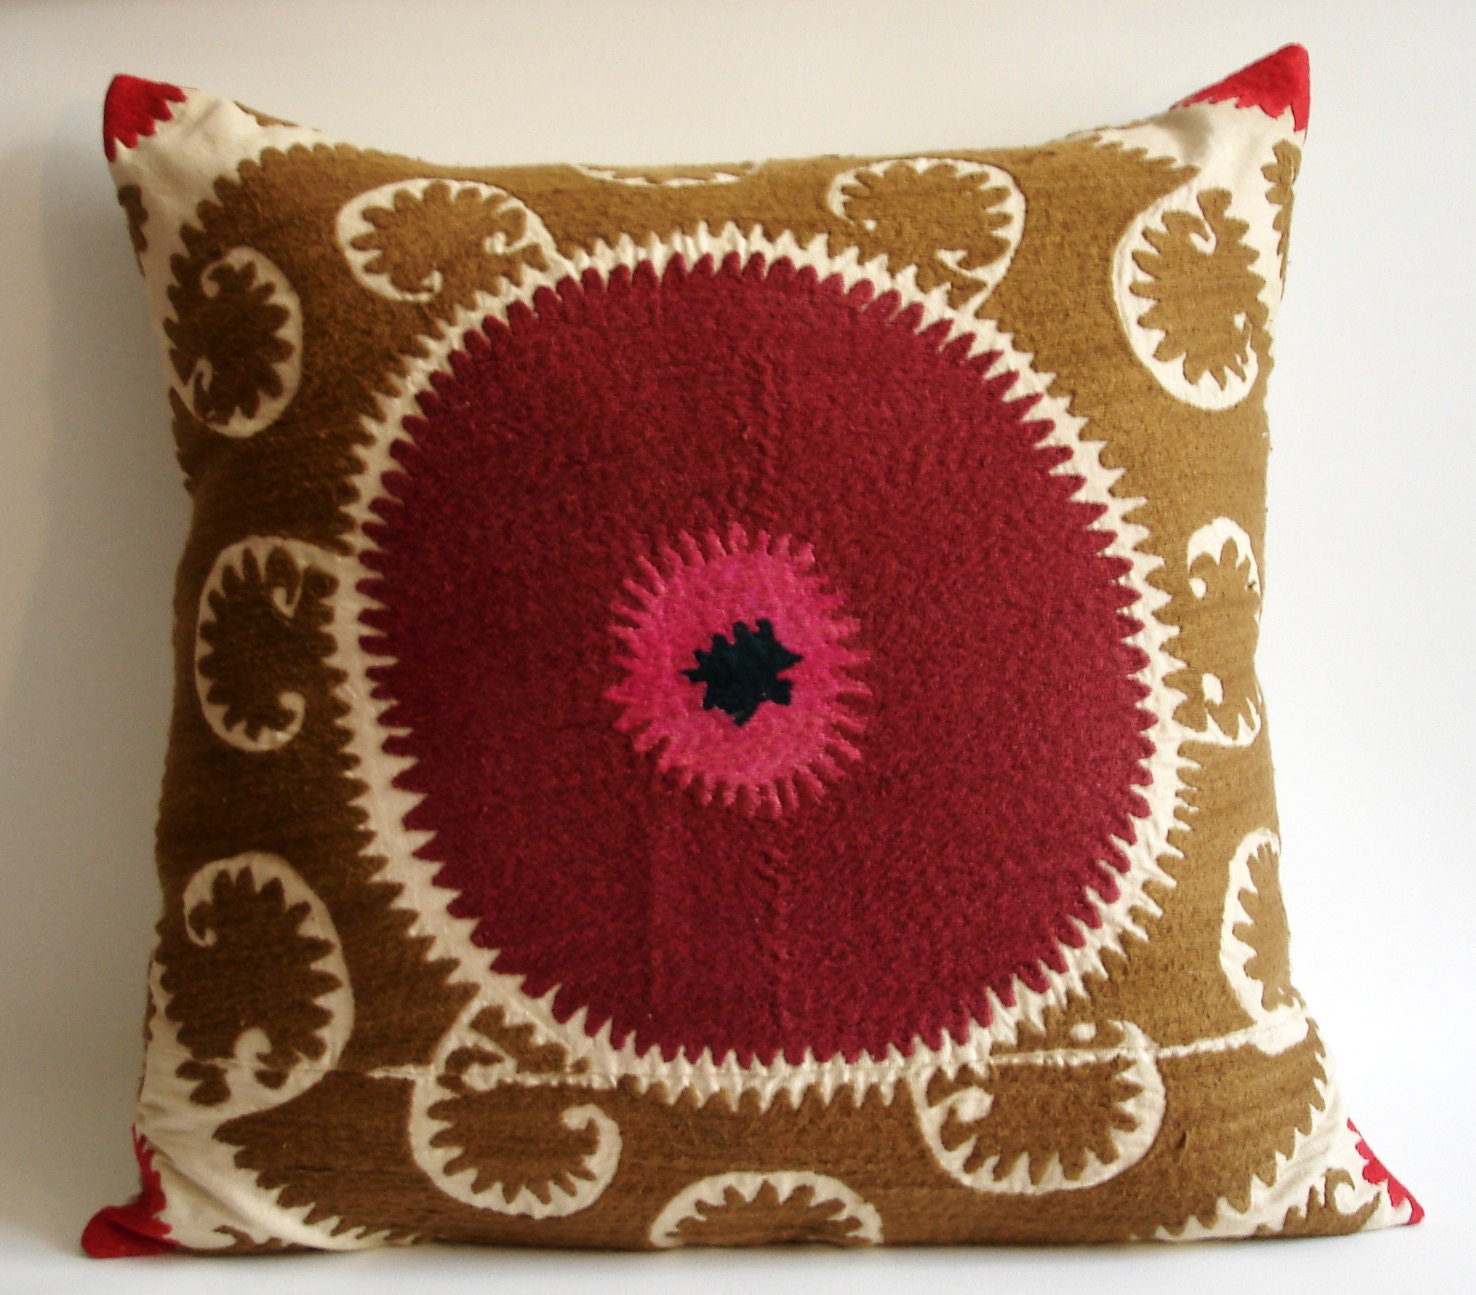 Sukan / Vintage Hand Embroidered Suzani Pillow Cover - 22x22